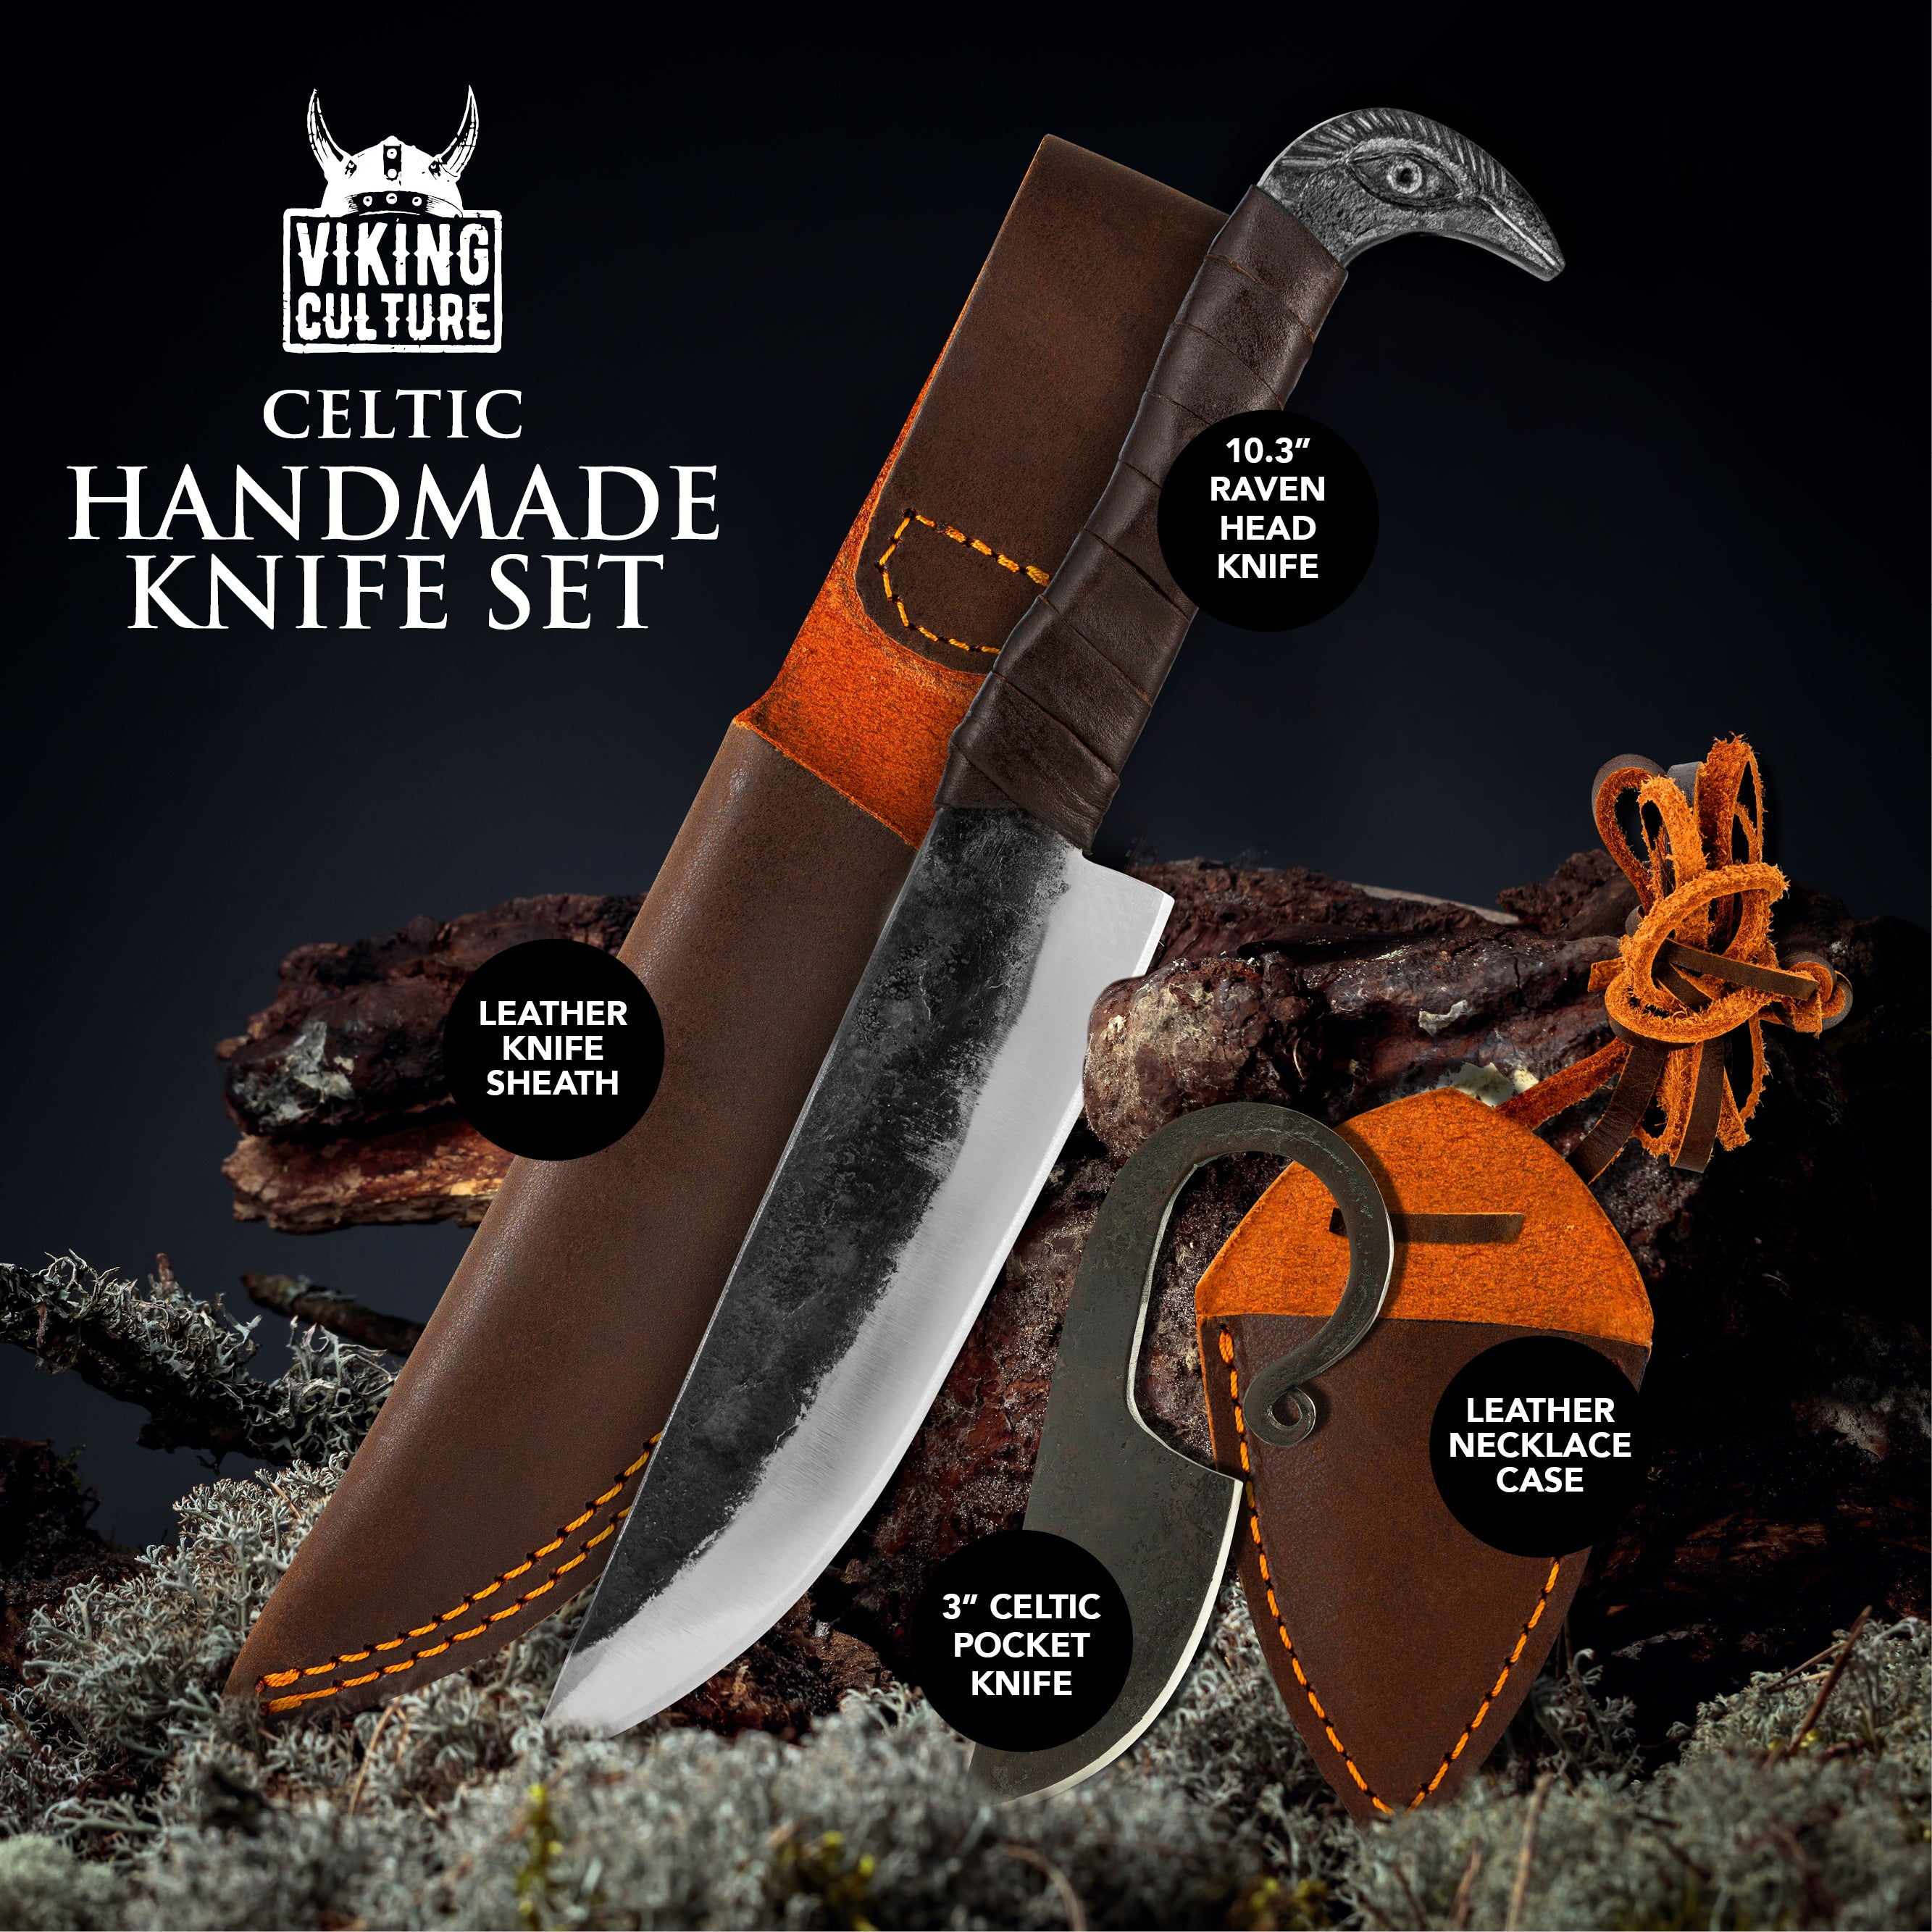 "Viking Culture 2-Piece Viking Knife Set - 10.3"" Raven-Head Viking Knife with 6.5"" Blade & Leather Sheath - 3"" Celtic Pocket Knife with Necklace Case - Sharp Hand-Forged Real Carbon Steel"